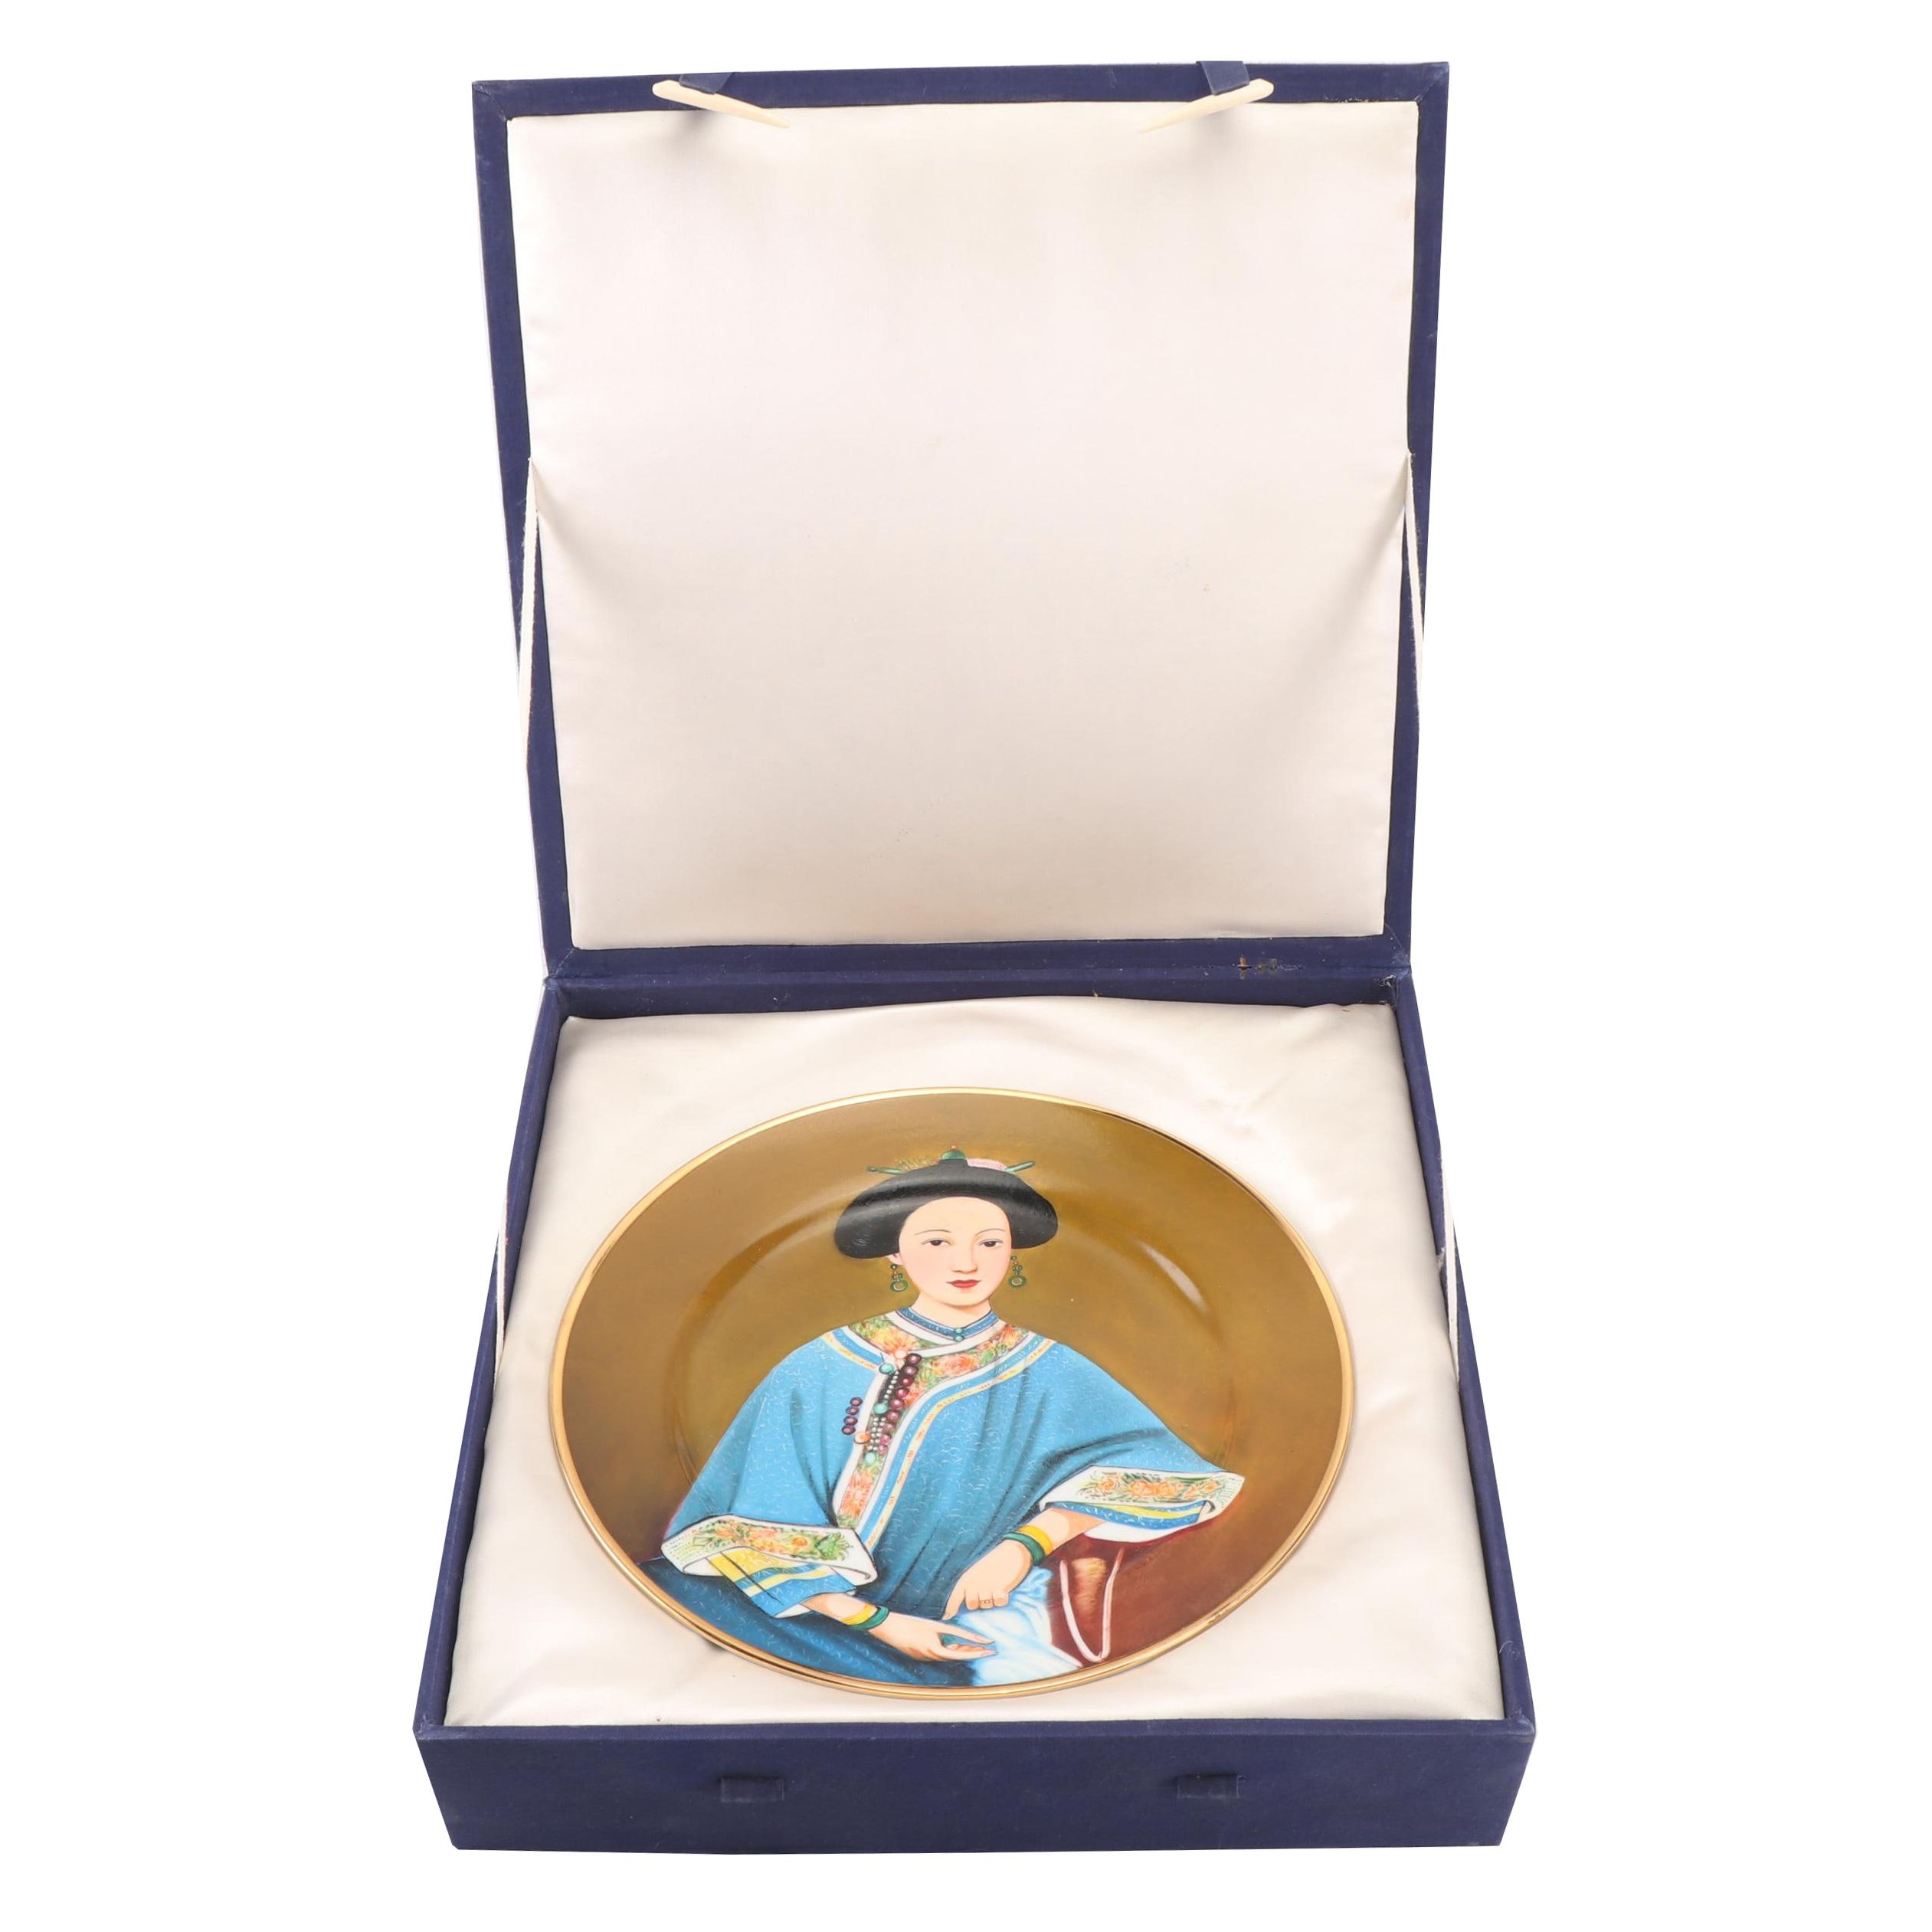 Chinese Hand Painted Porcelain Portrait Plate with Box